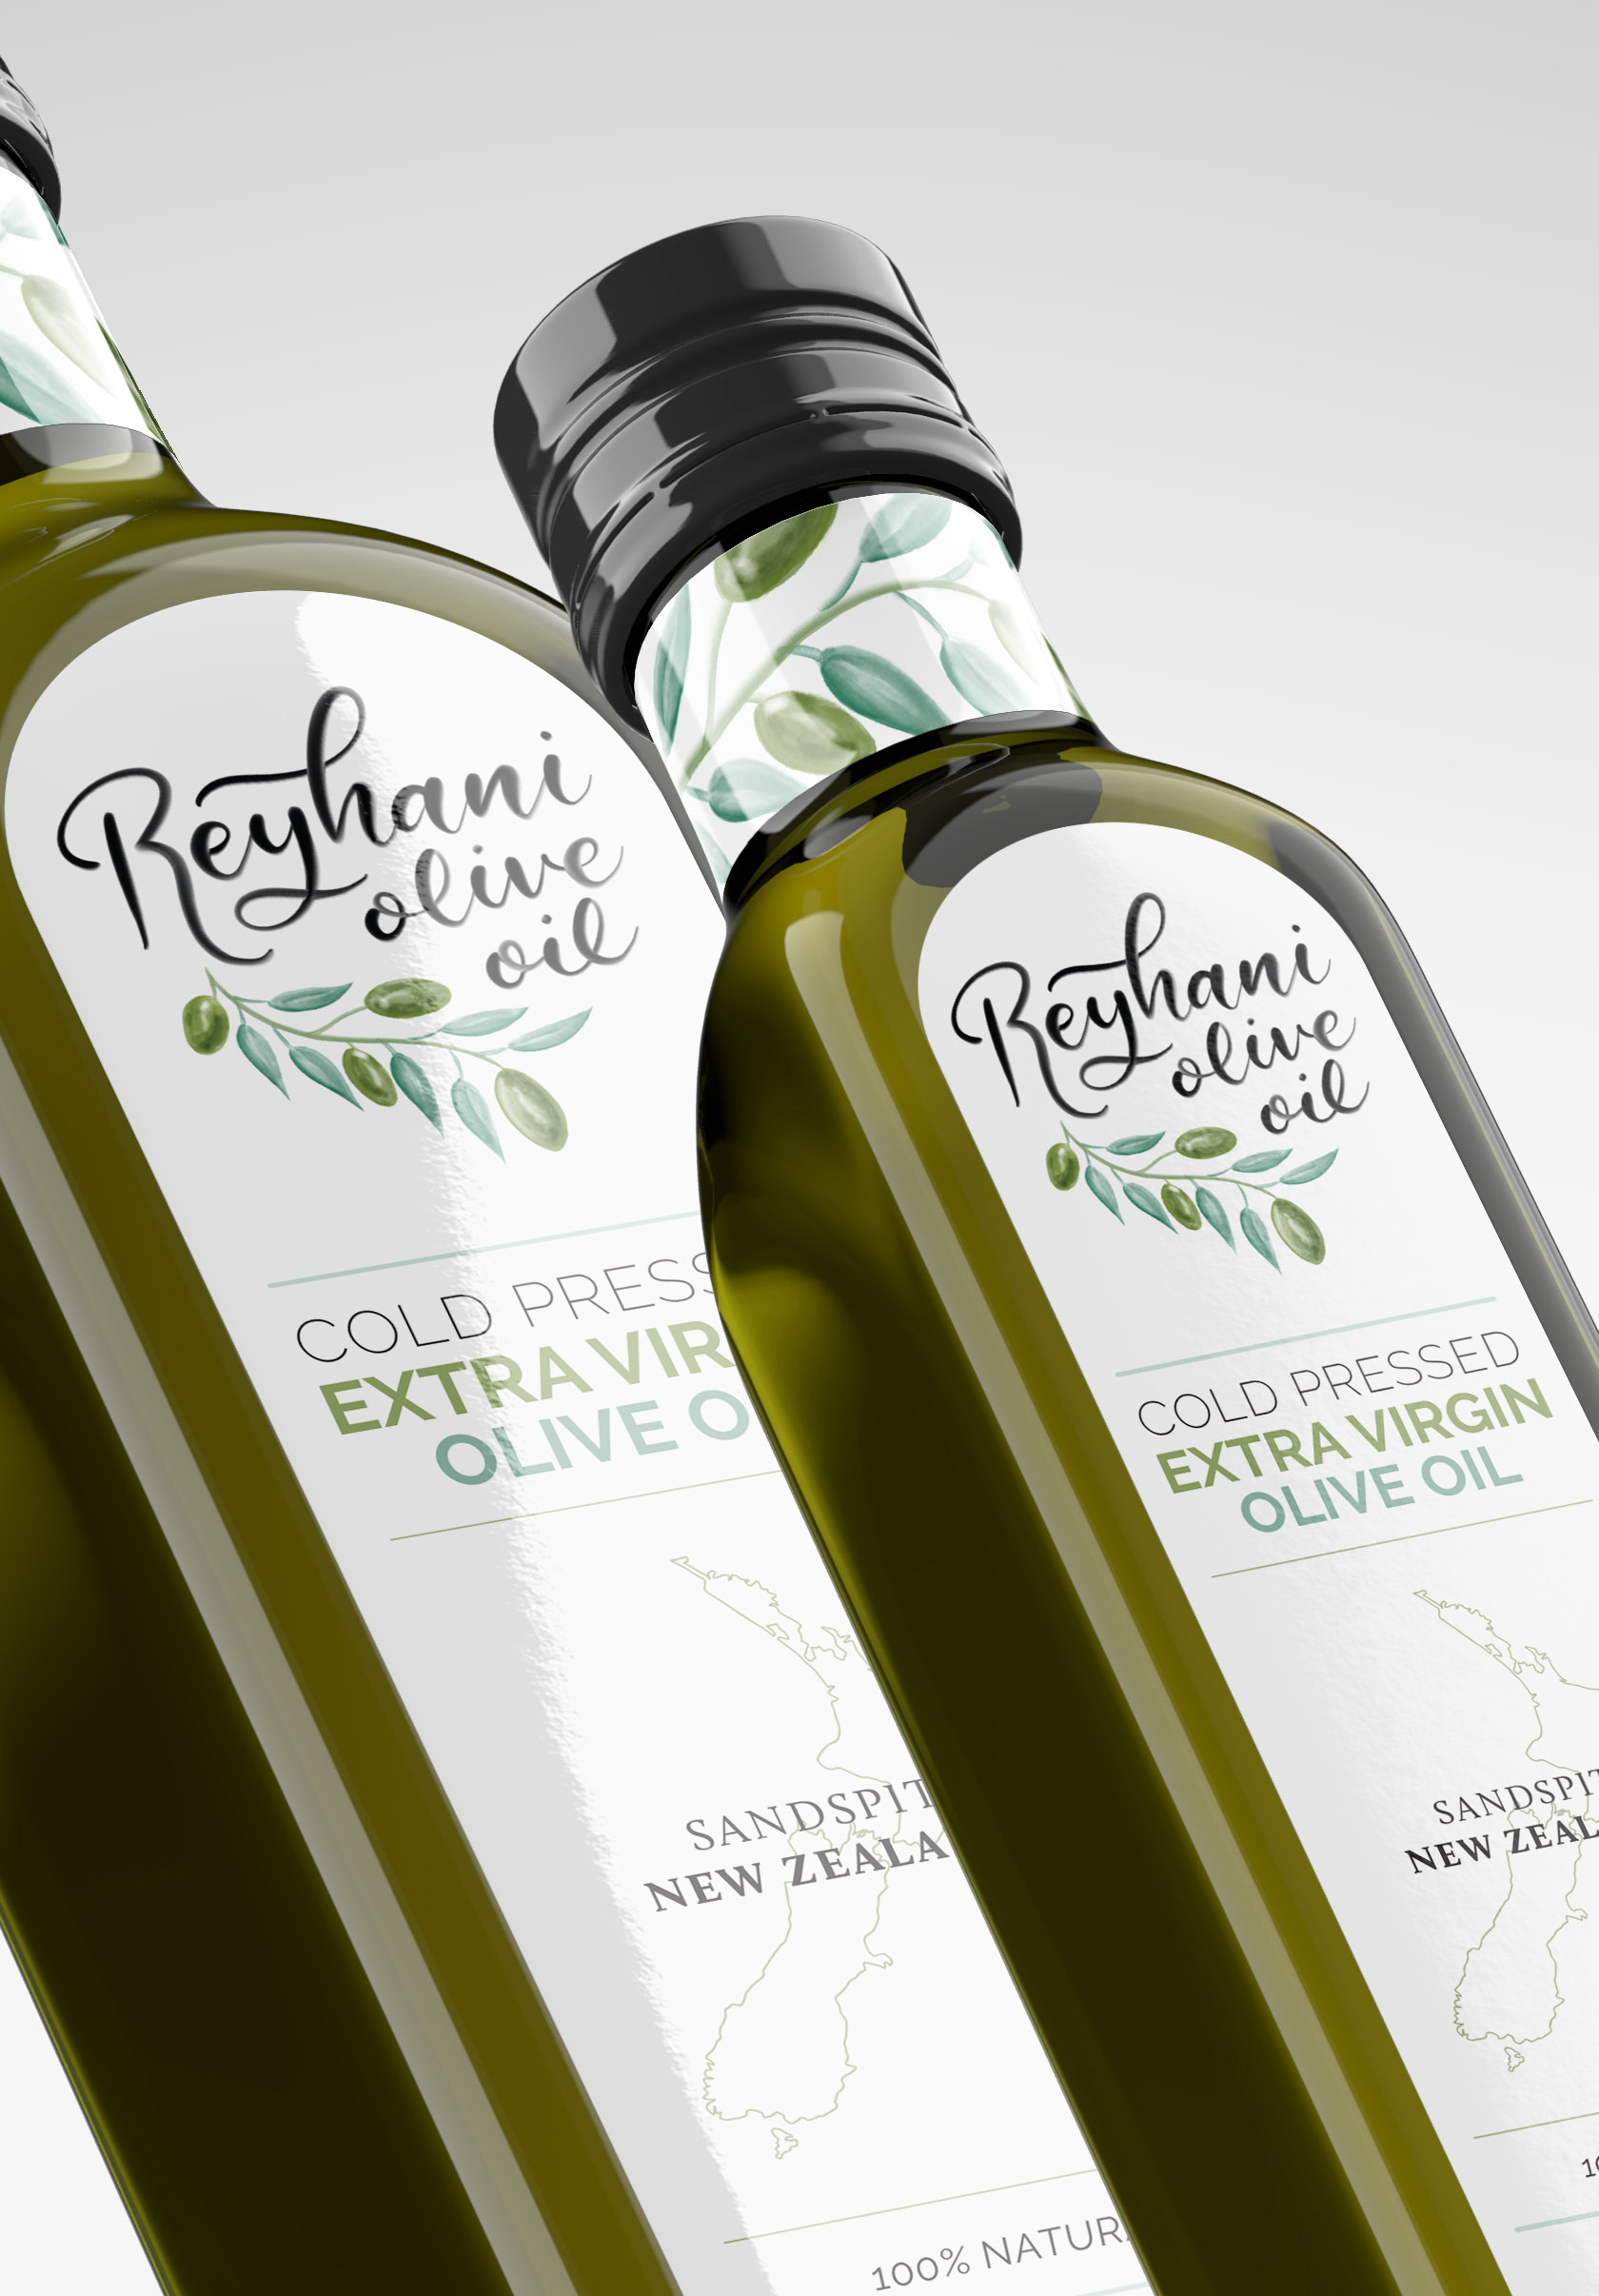 Close up of two olive oil bottles